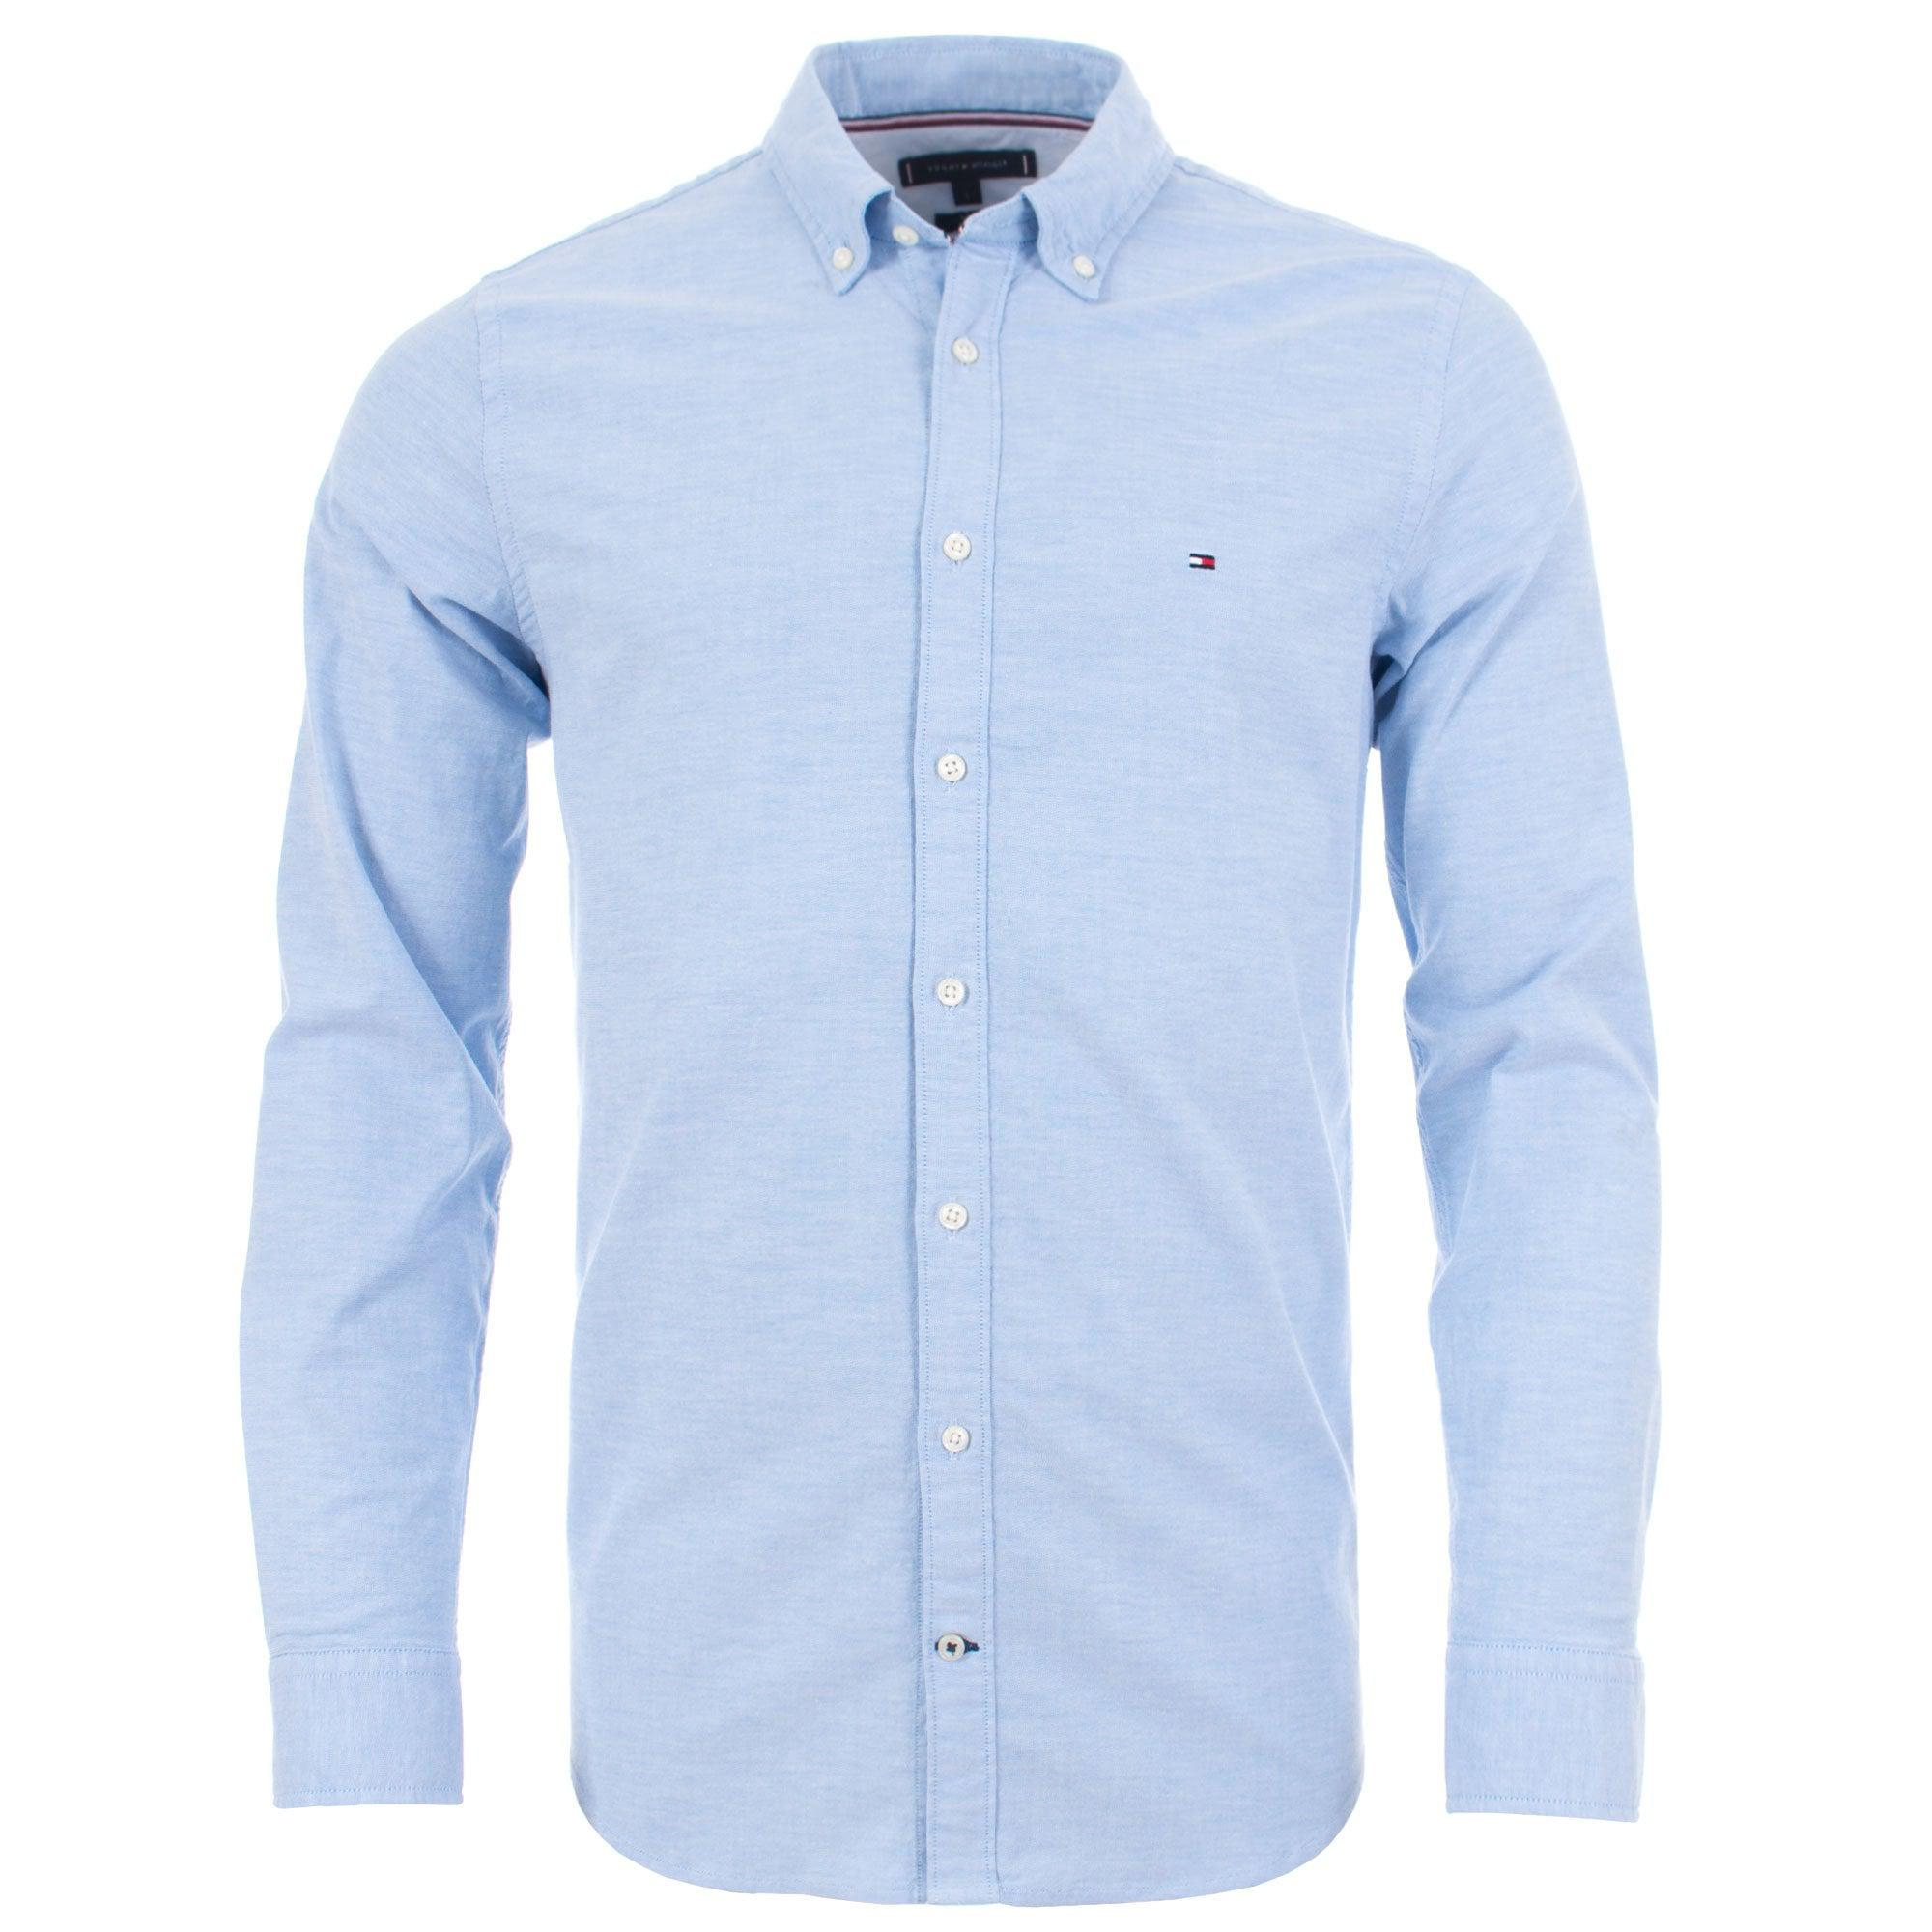 Tommy Hilfiger Slim Fit Core Stretch Oxford Shirt in Blue for Men - Lyst 61524756e09